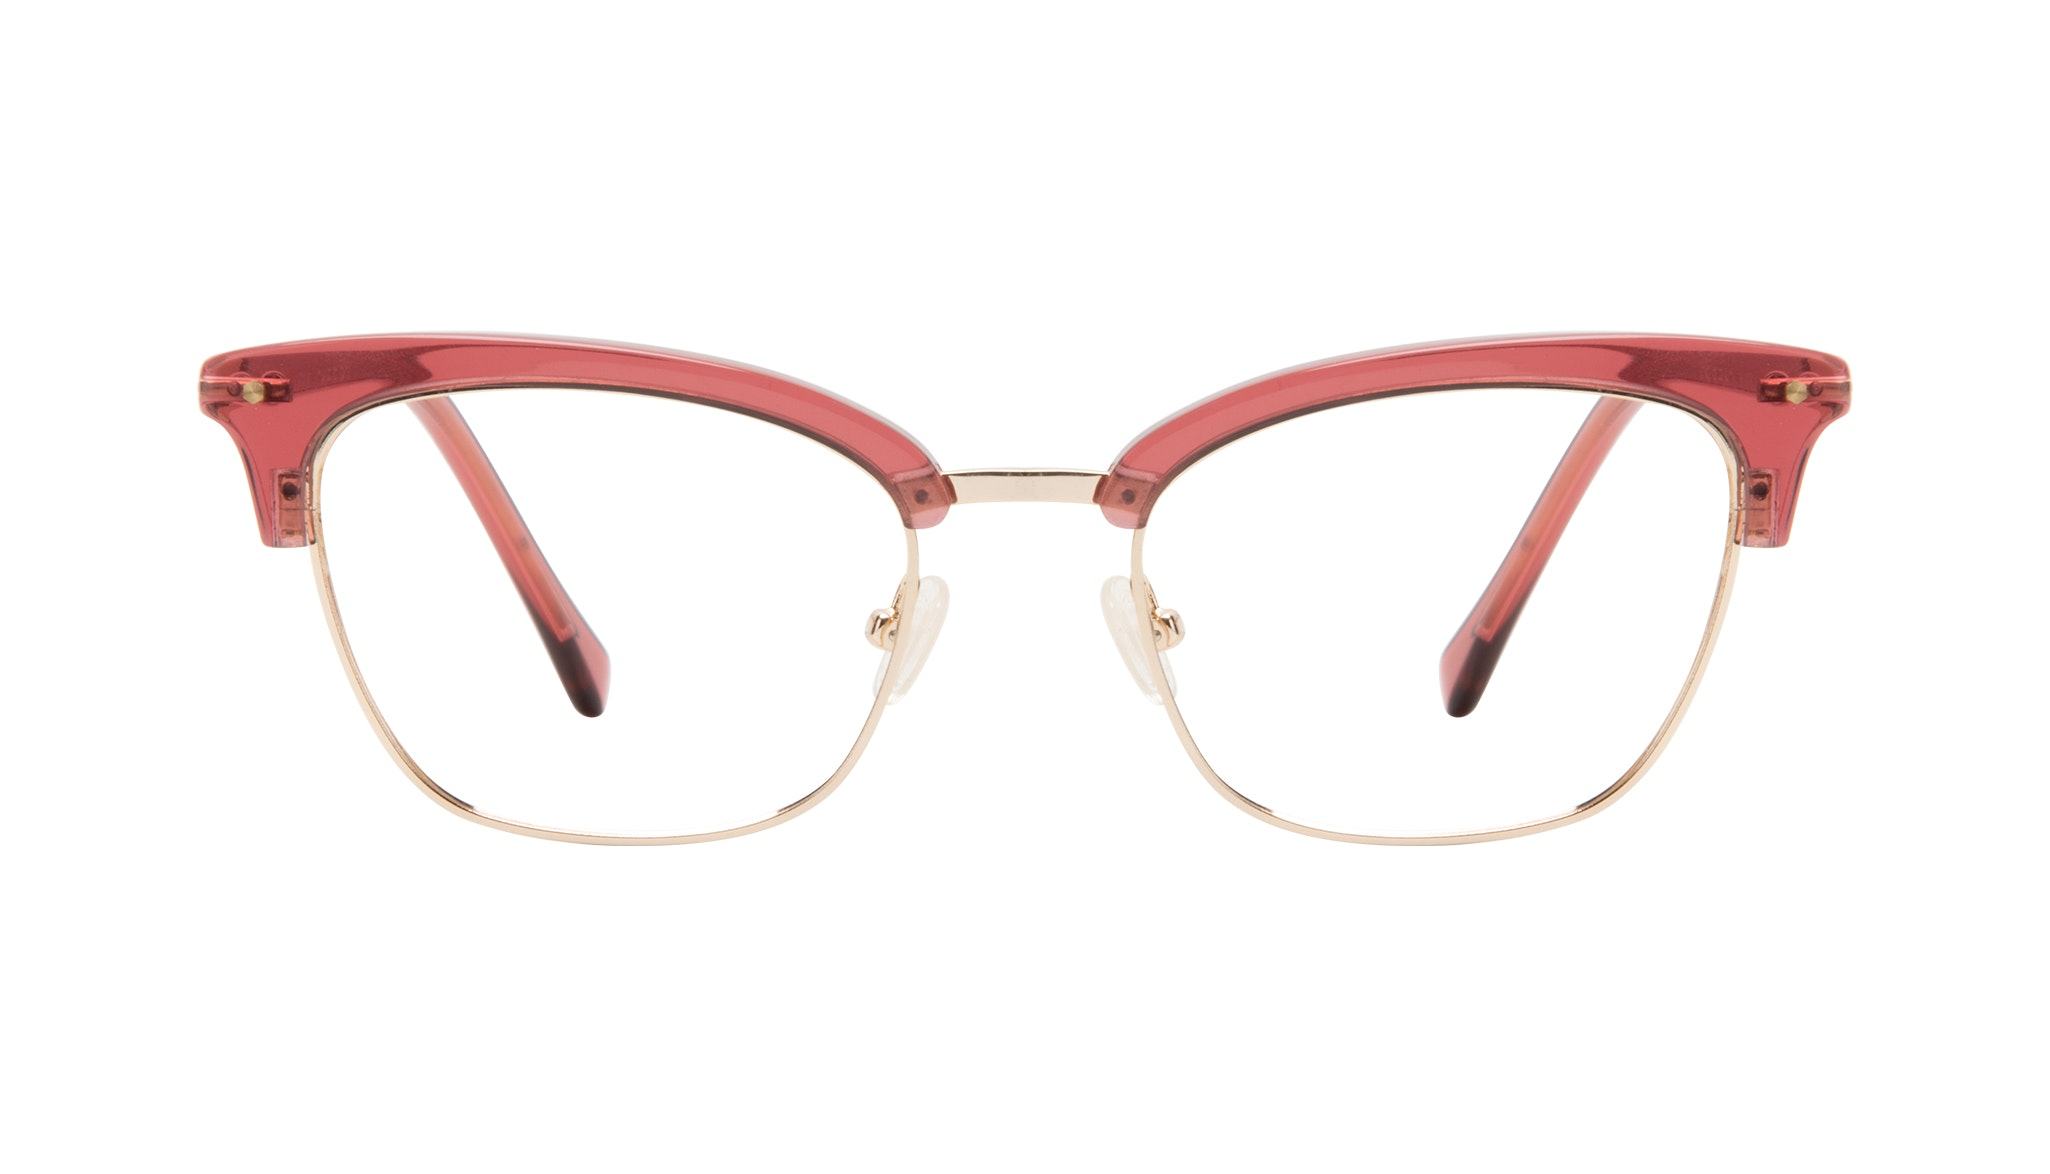 Affordable Fashion Glasses Cat Eye Eyeglasses Women Savvy Cherry